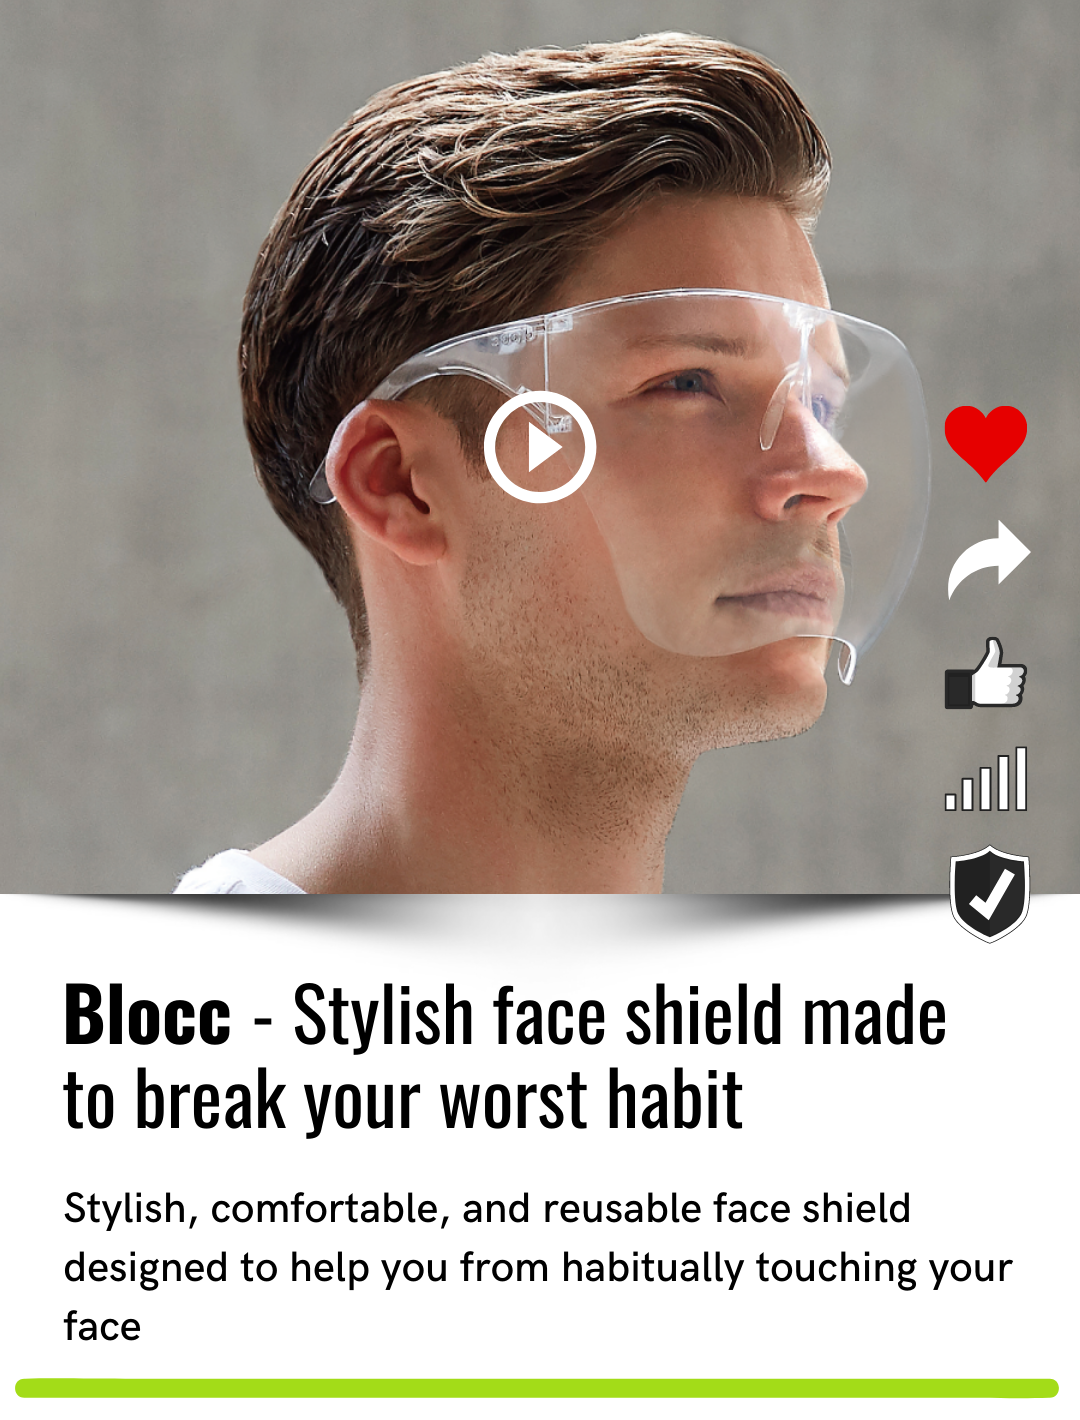 Blocc - Stylish face shield made to break your worst habit